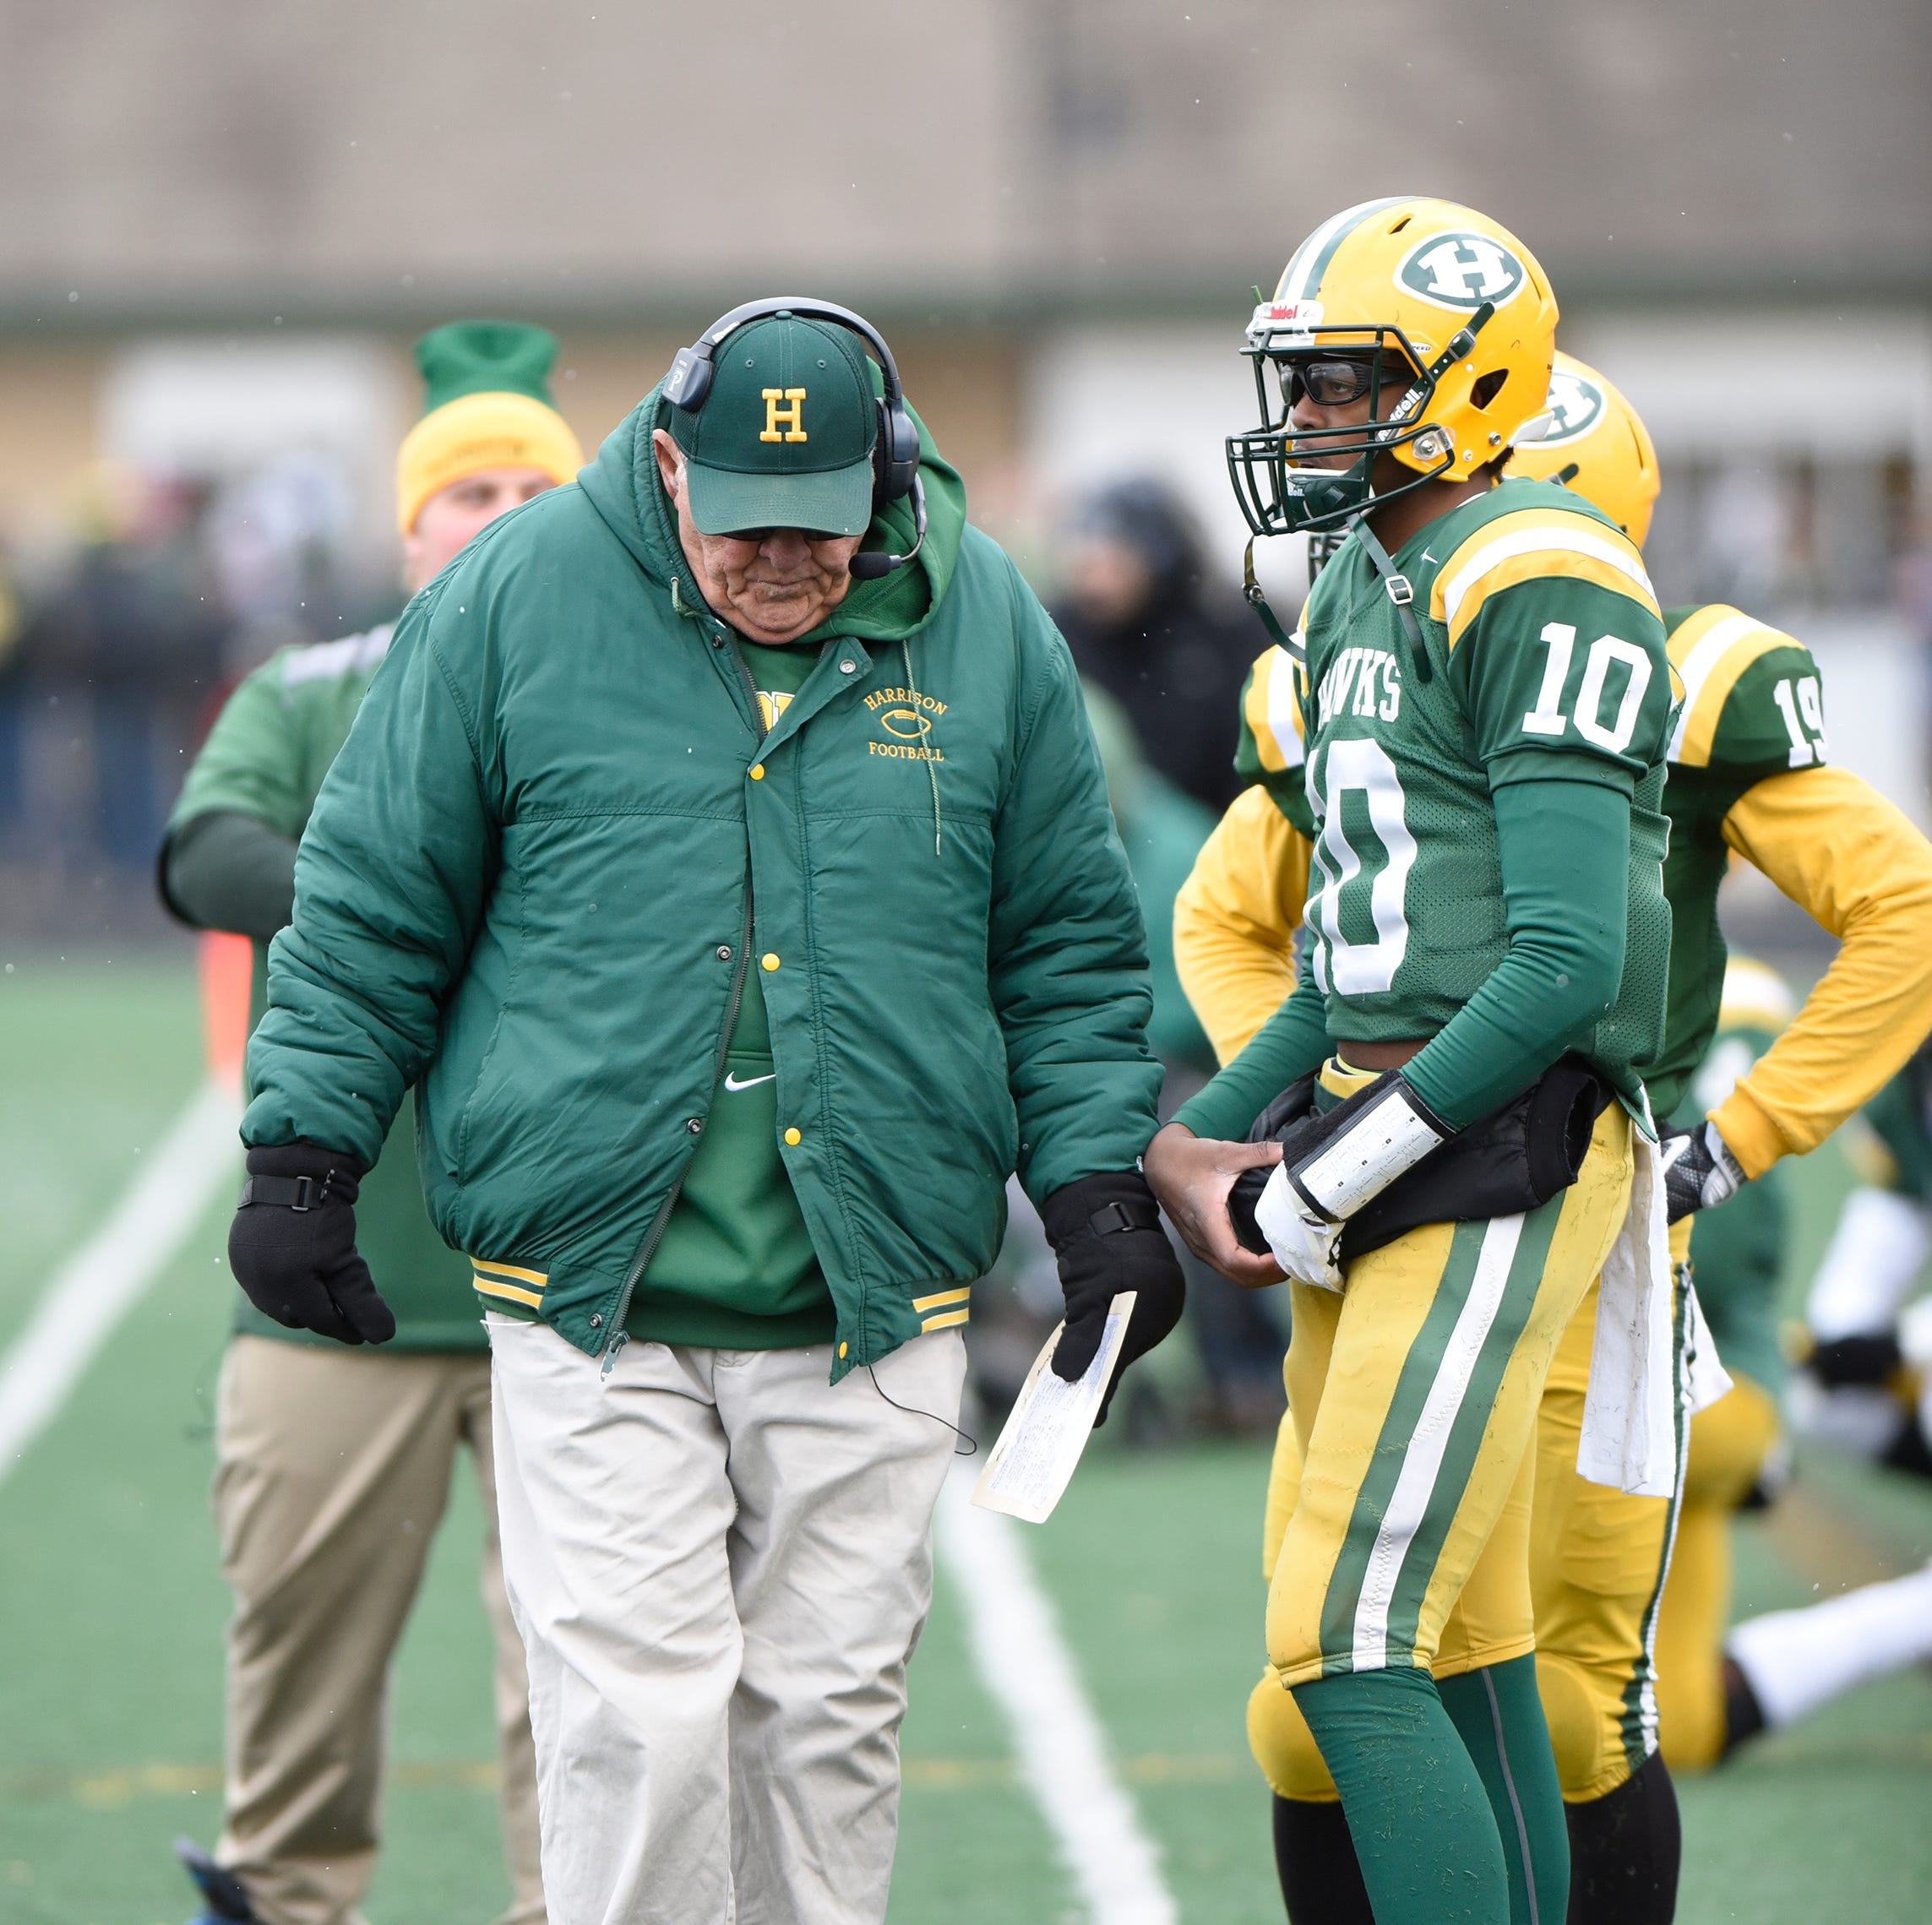 It's a wrap. Harrison's renowned football era is over with playoff loss